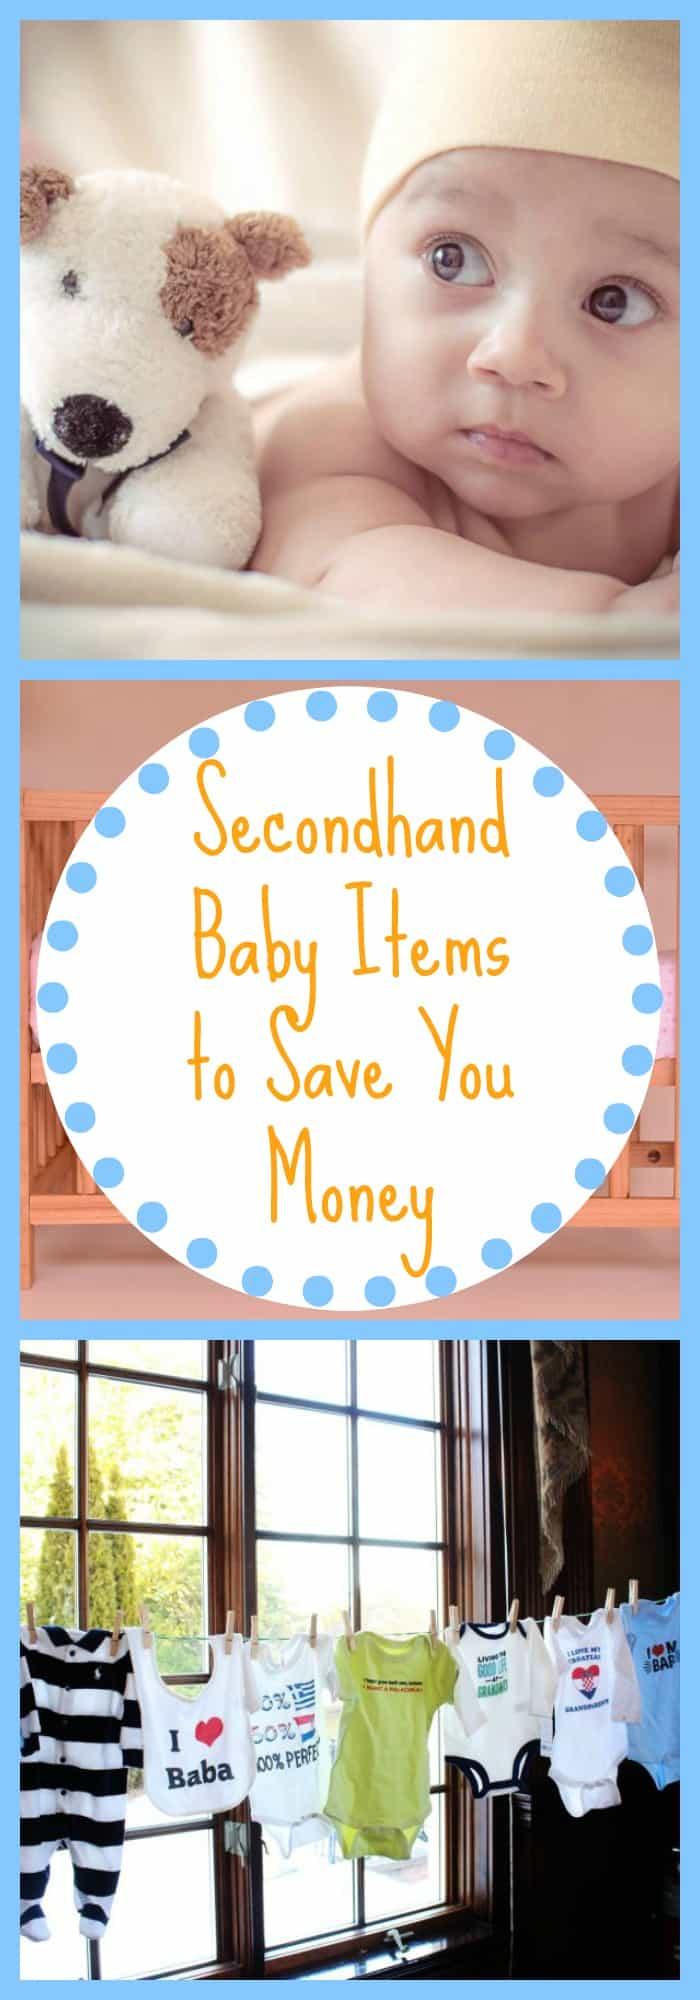 Secondhand Baby Items to Save You Money